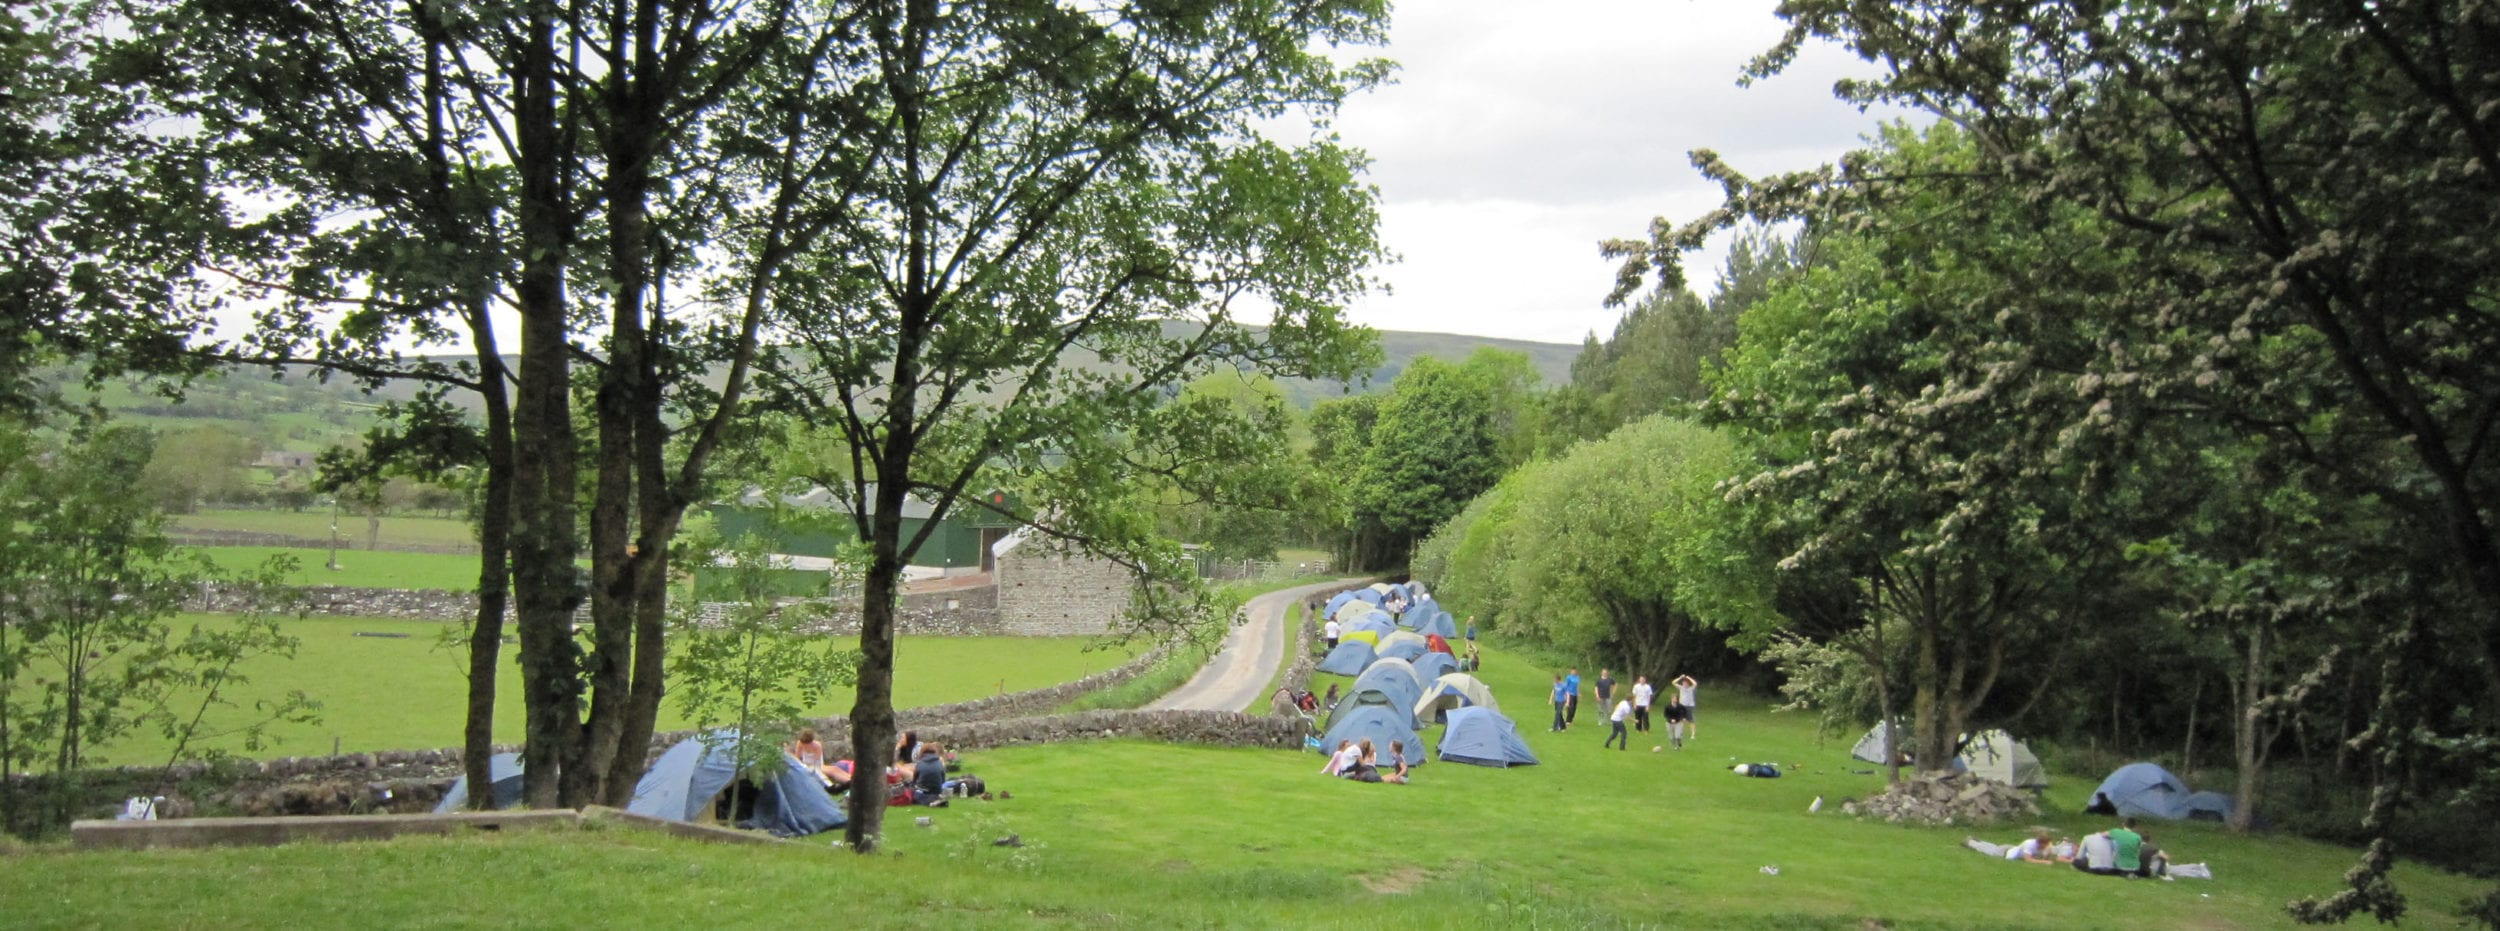 DofE campers enjoying an evening at Pindale Farm in the Peak District